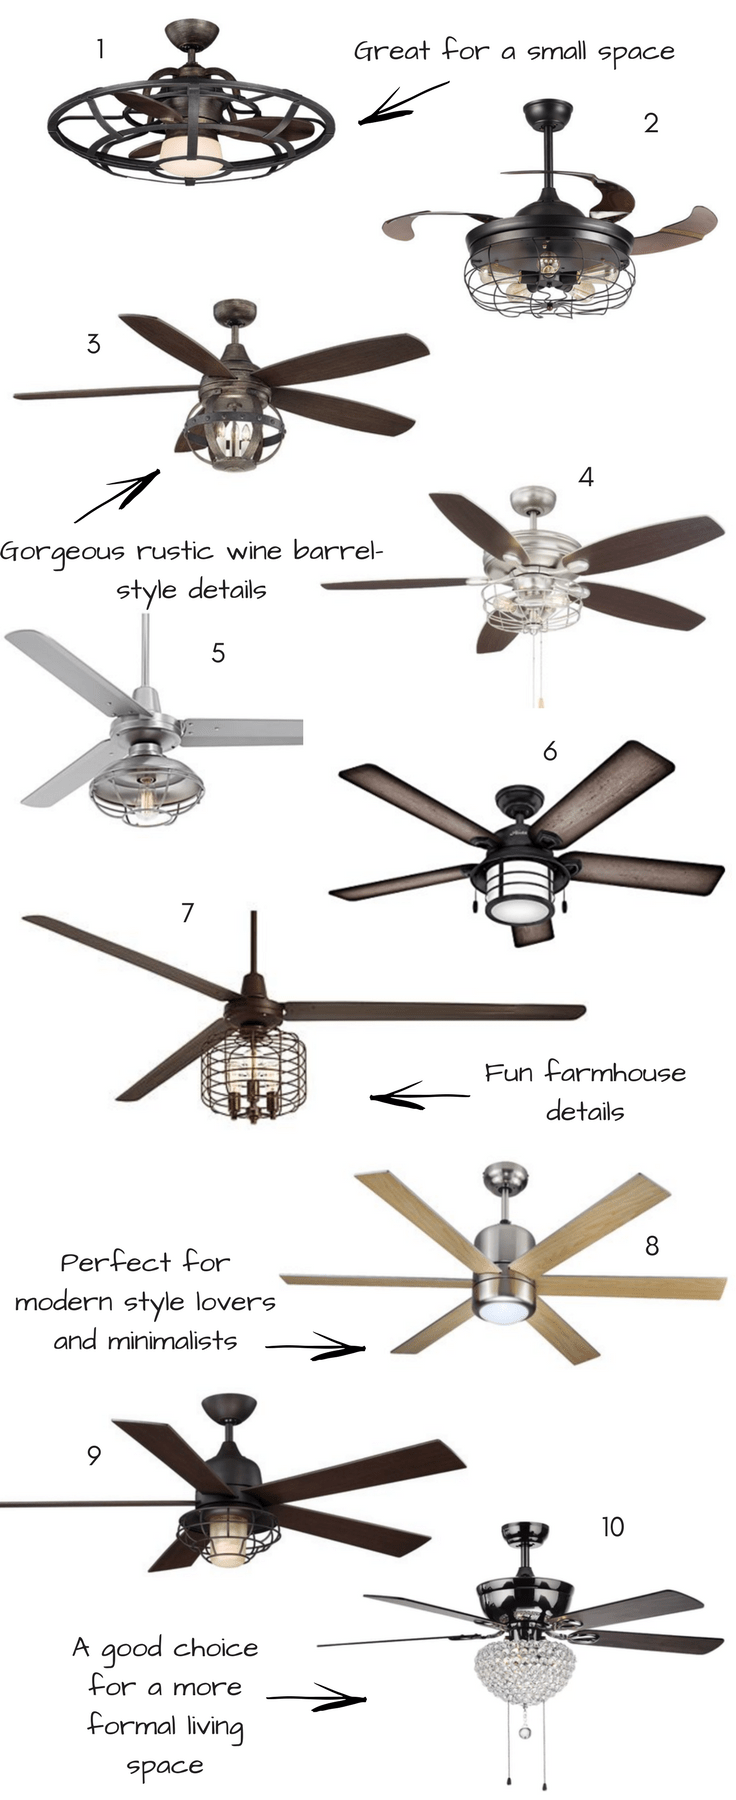 10 affordable stylish indoor ceiling fans with lights kay rh pinterest com